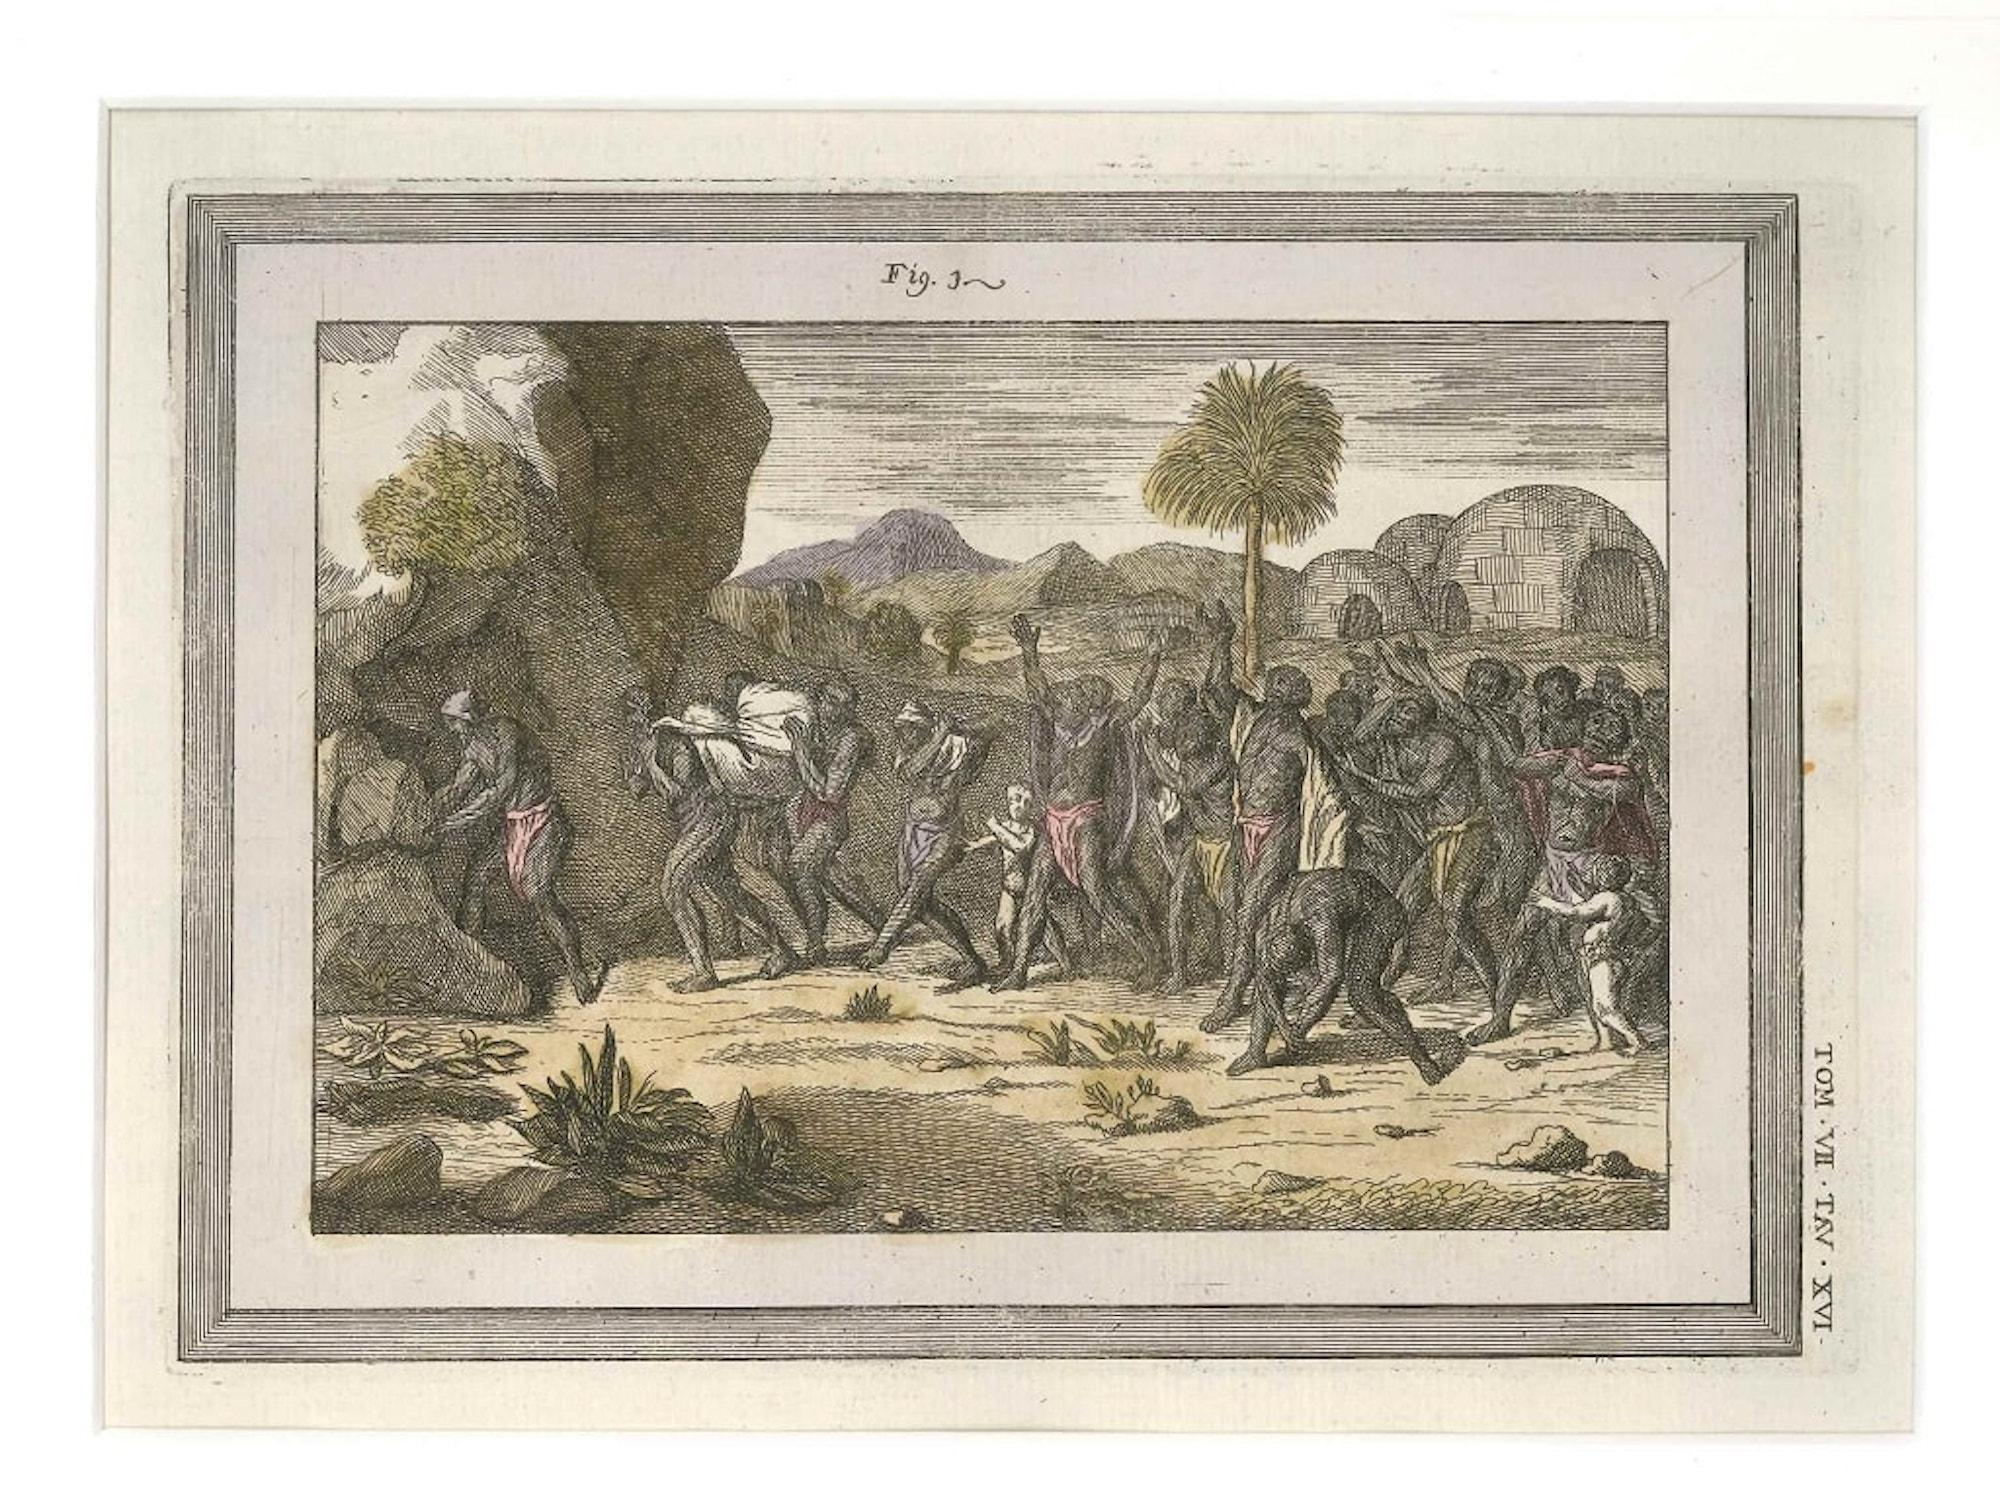 Funeral Procession among the Indigenouses - by G. Pivati - 1746-1751